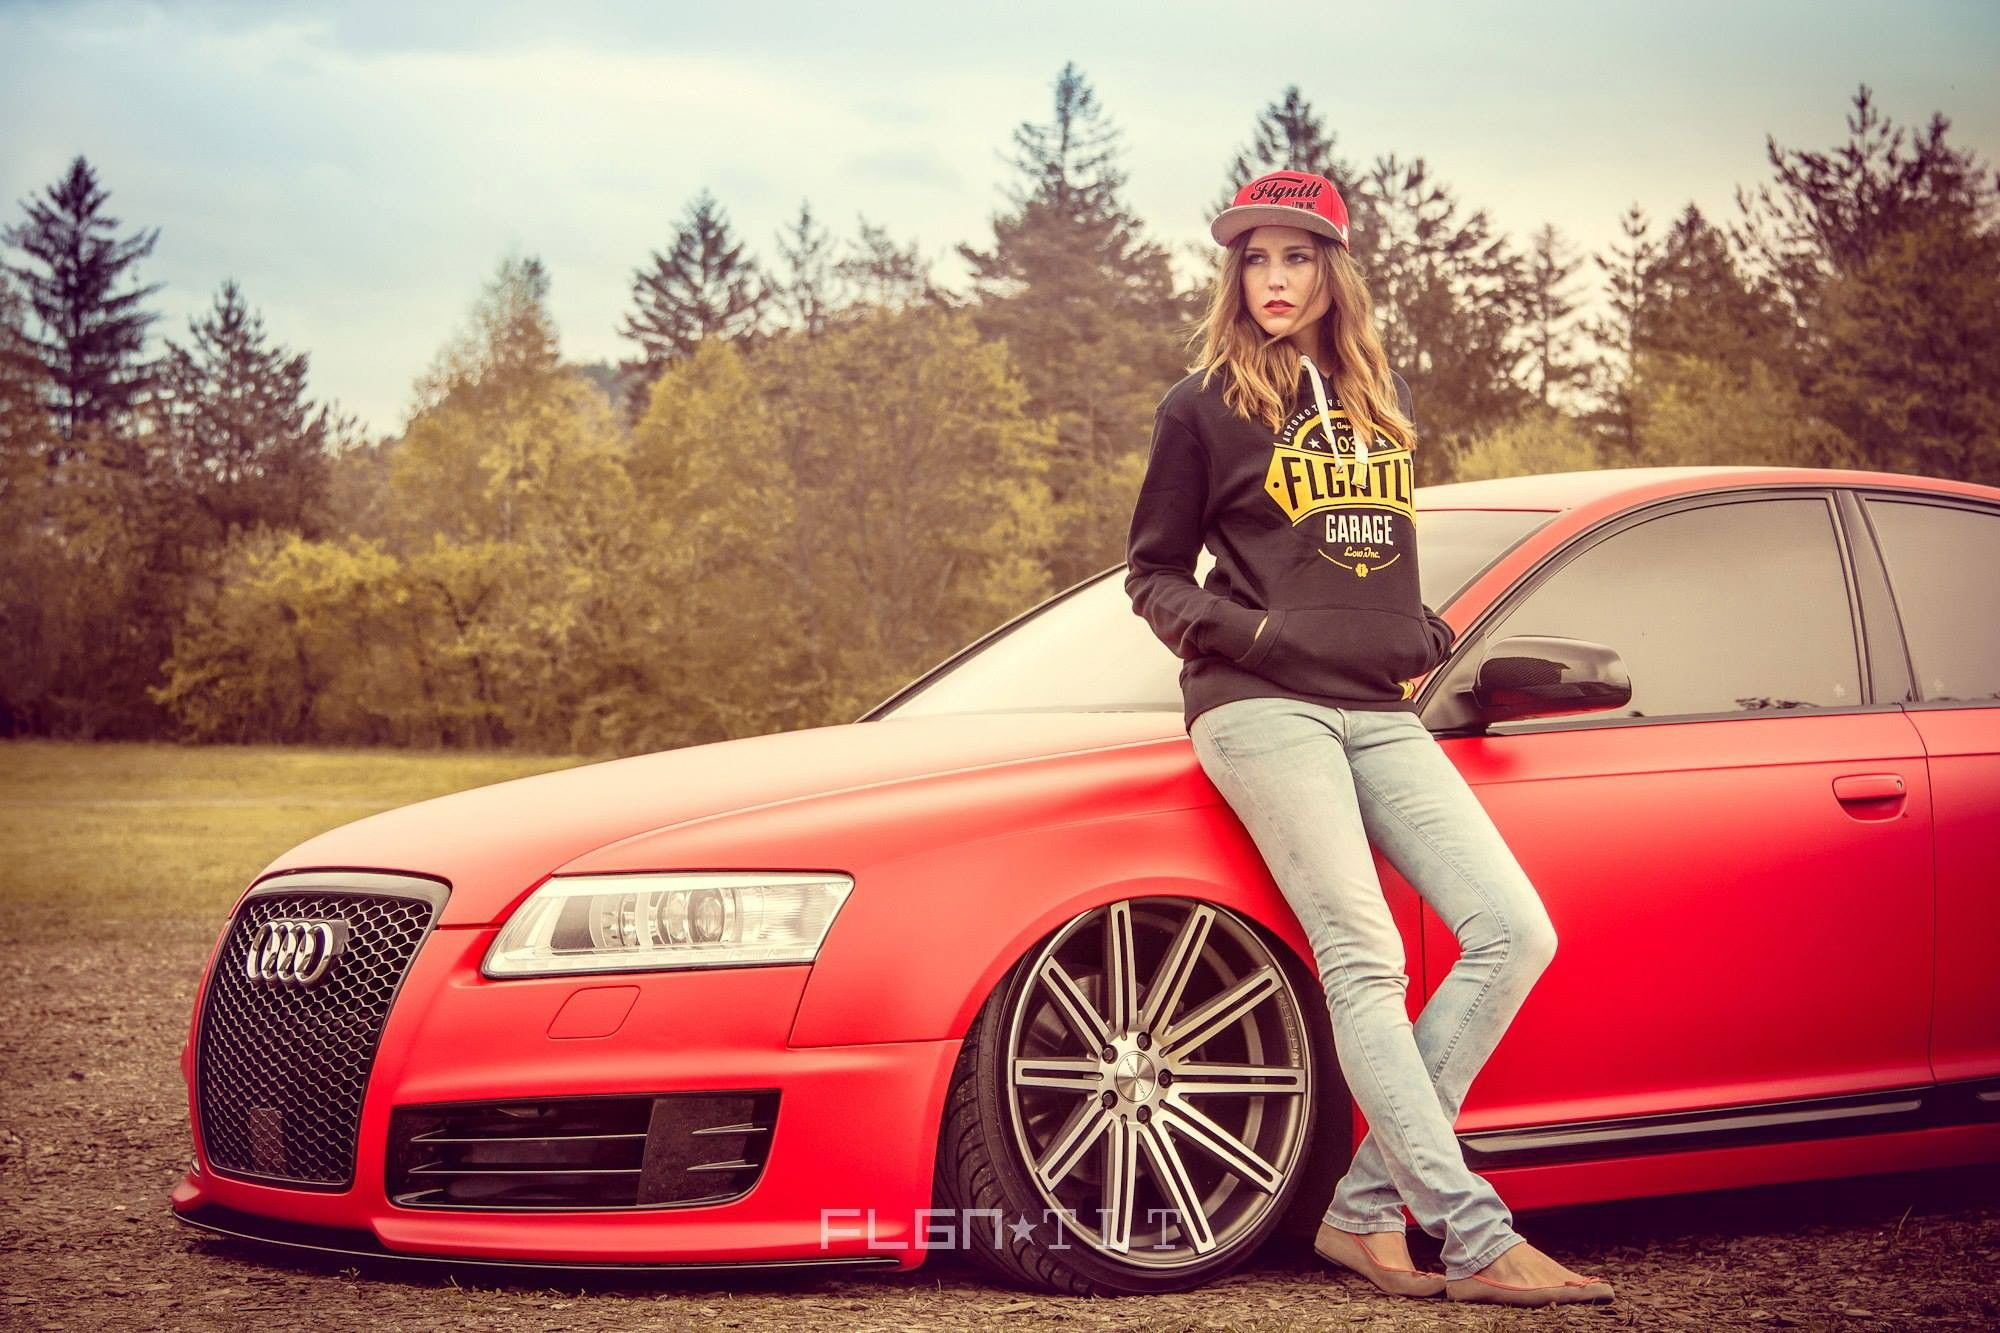 Girl With Audi Car Google Search Red Audi Audi Cars Women